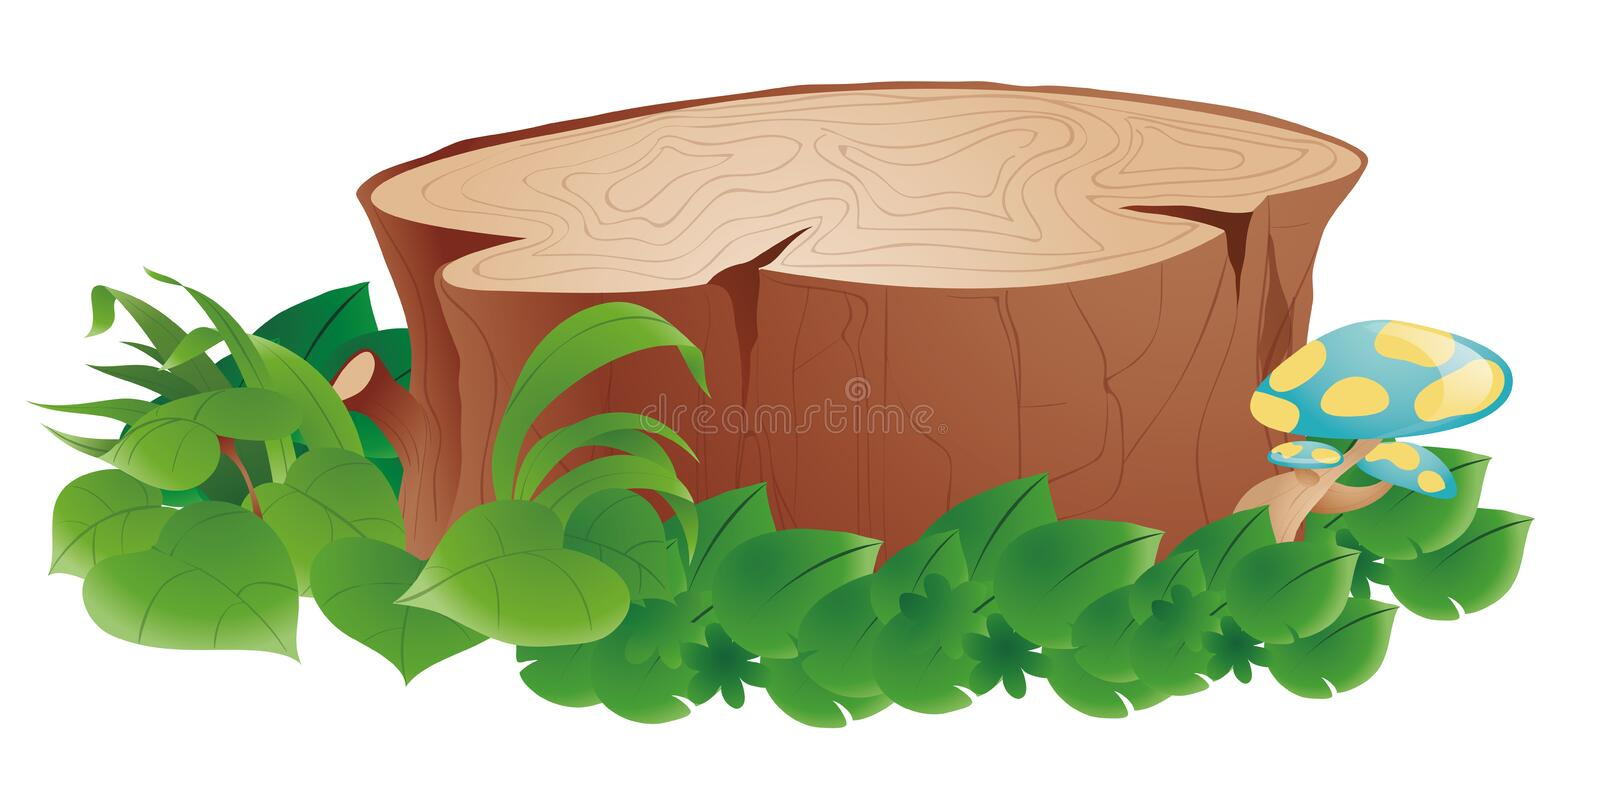 Stumps and grass vector illustration